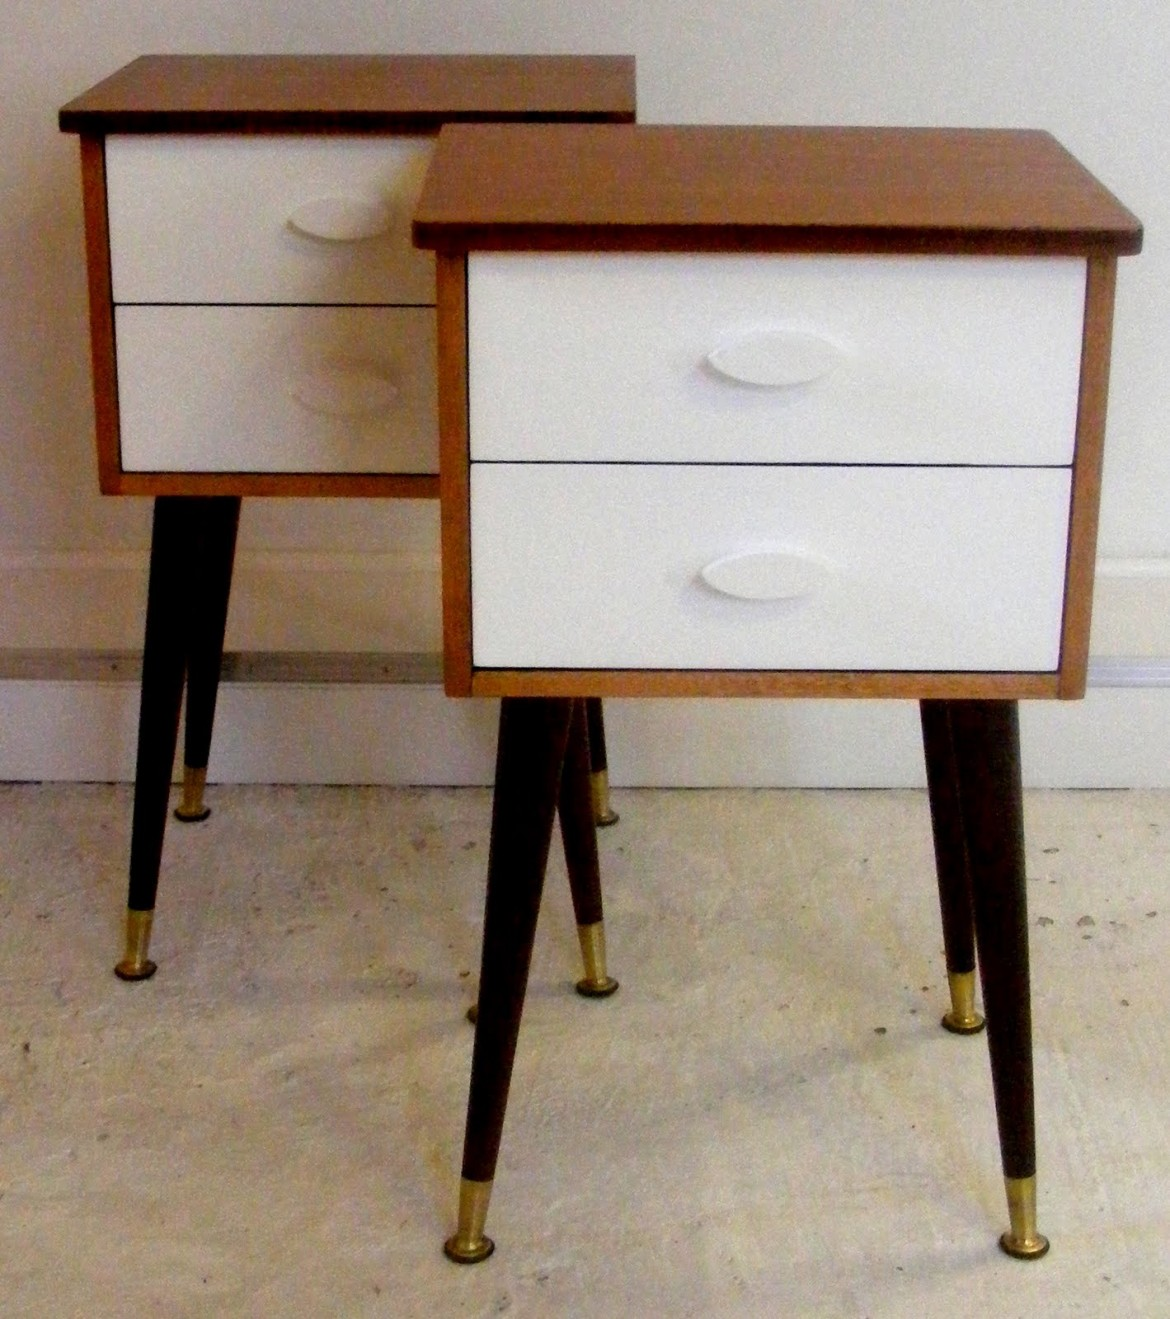 the terrific favorite modern country nightstands idea hotxpress stylish small bedside tables space quickinfoway interior ideas mid century mirrored nightstand marble top accent